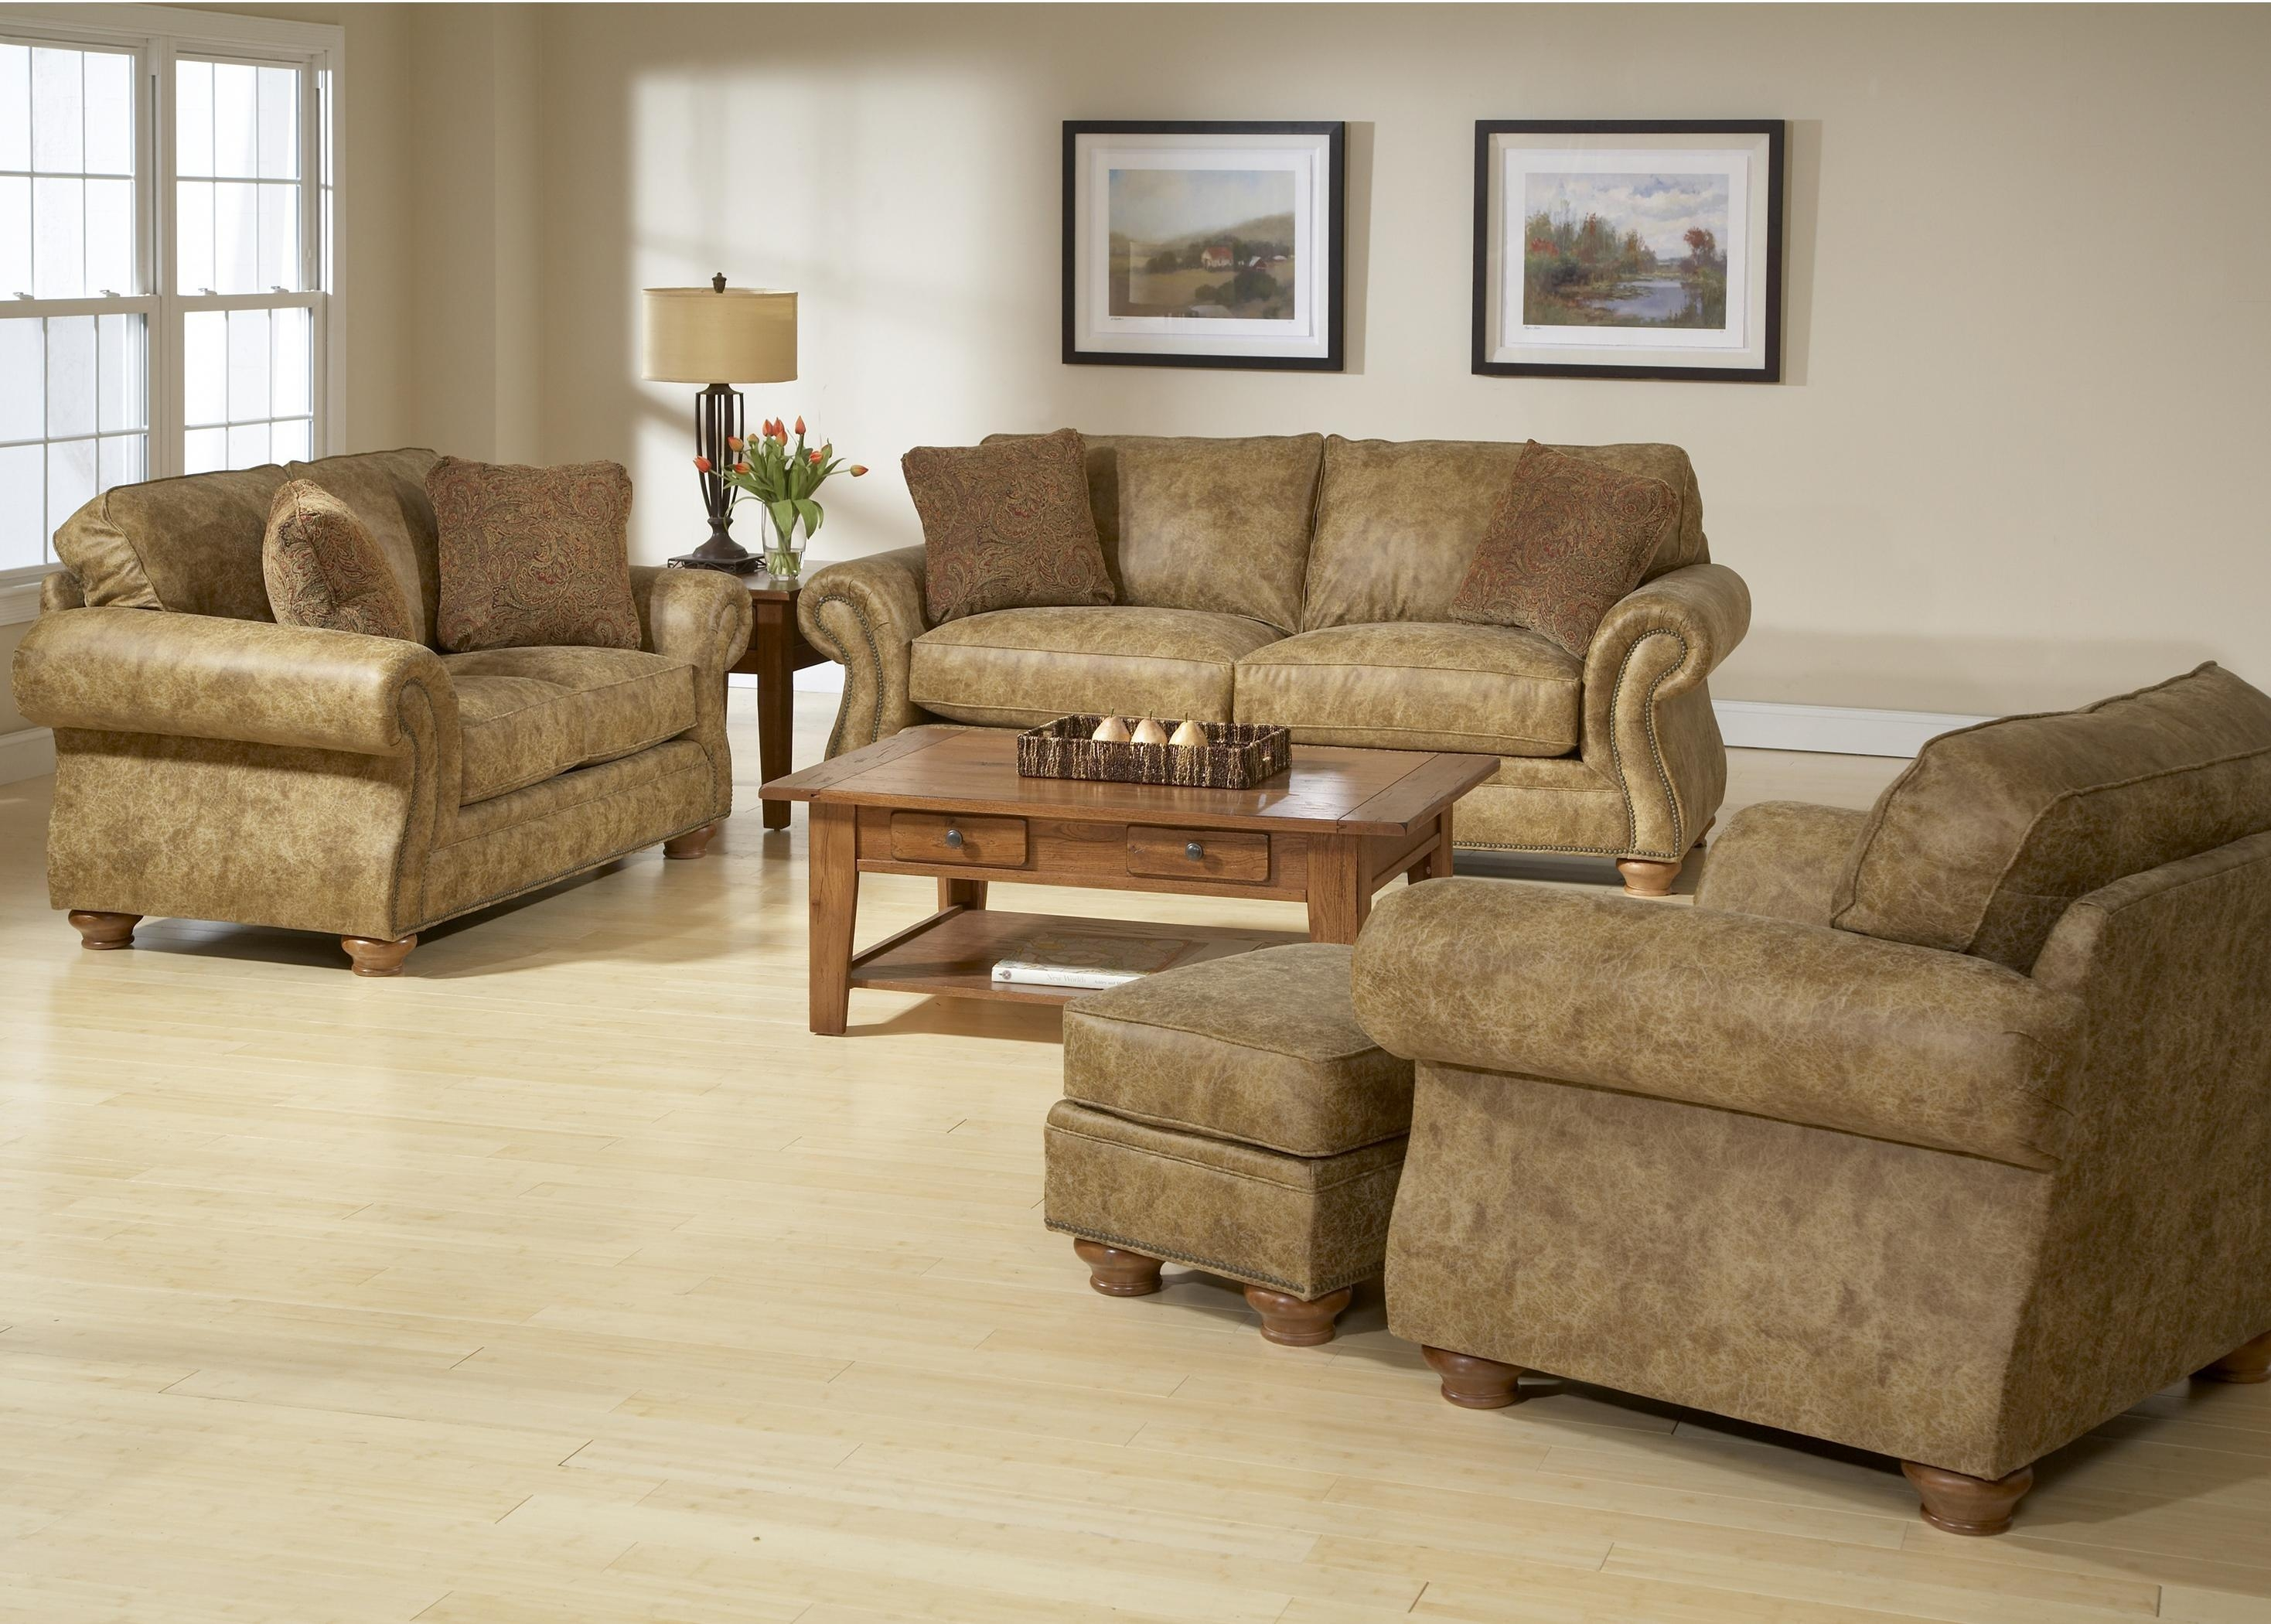 Broyhill Furniture Laramie 3 Piece Sectional Sofa | Broyhill Of Intended For Broyhill Sofas (Image 8 of 20)